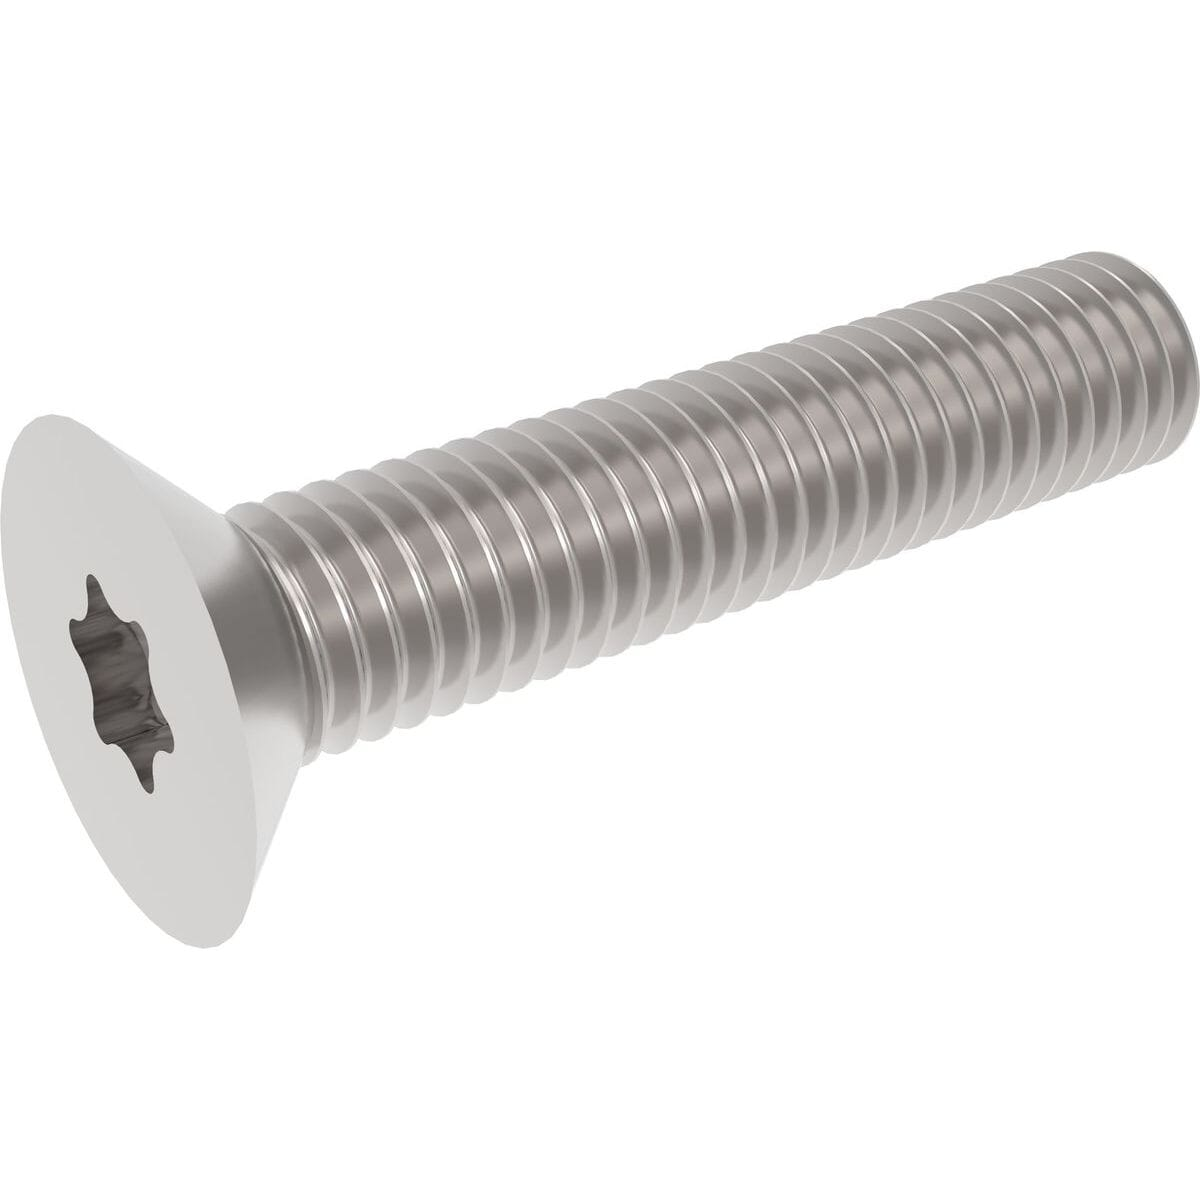 M4 x 20mm Torx Countersunk Screws (ISO 14581) - Marine Stainless Steel (A4)